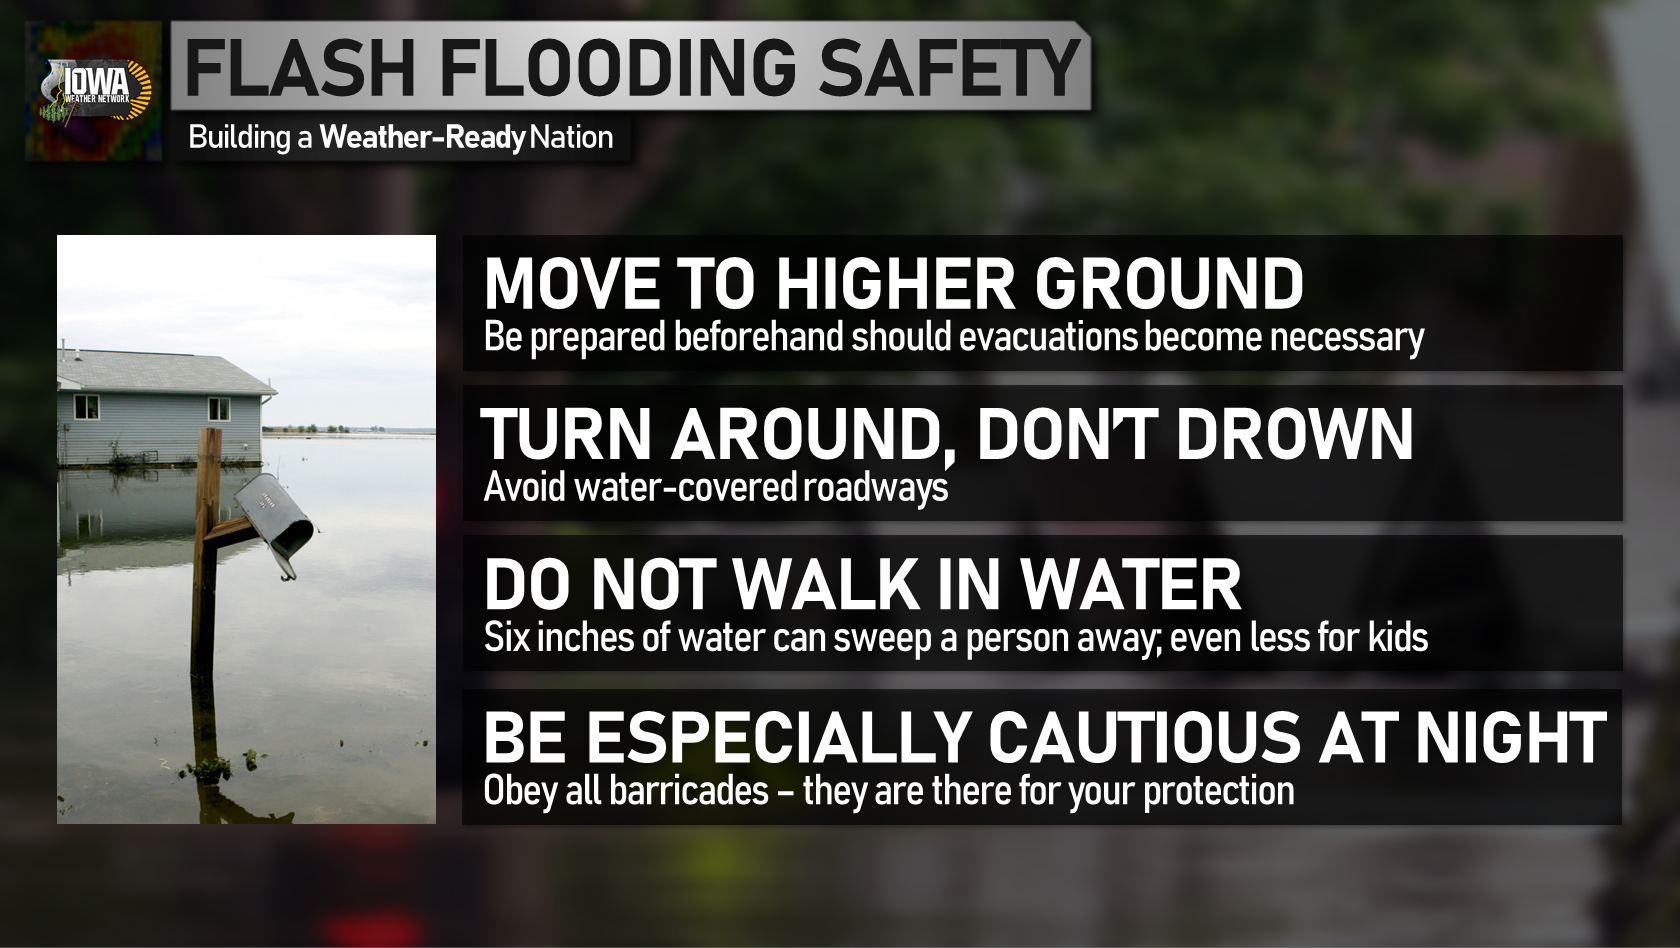 Flash flooding safety tips